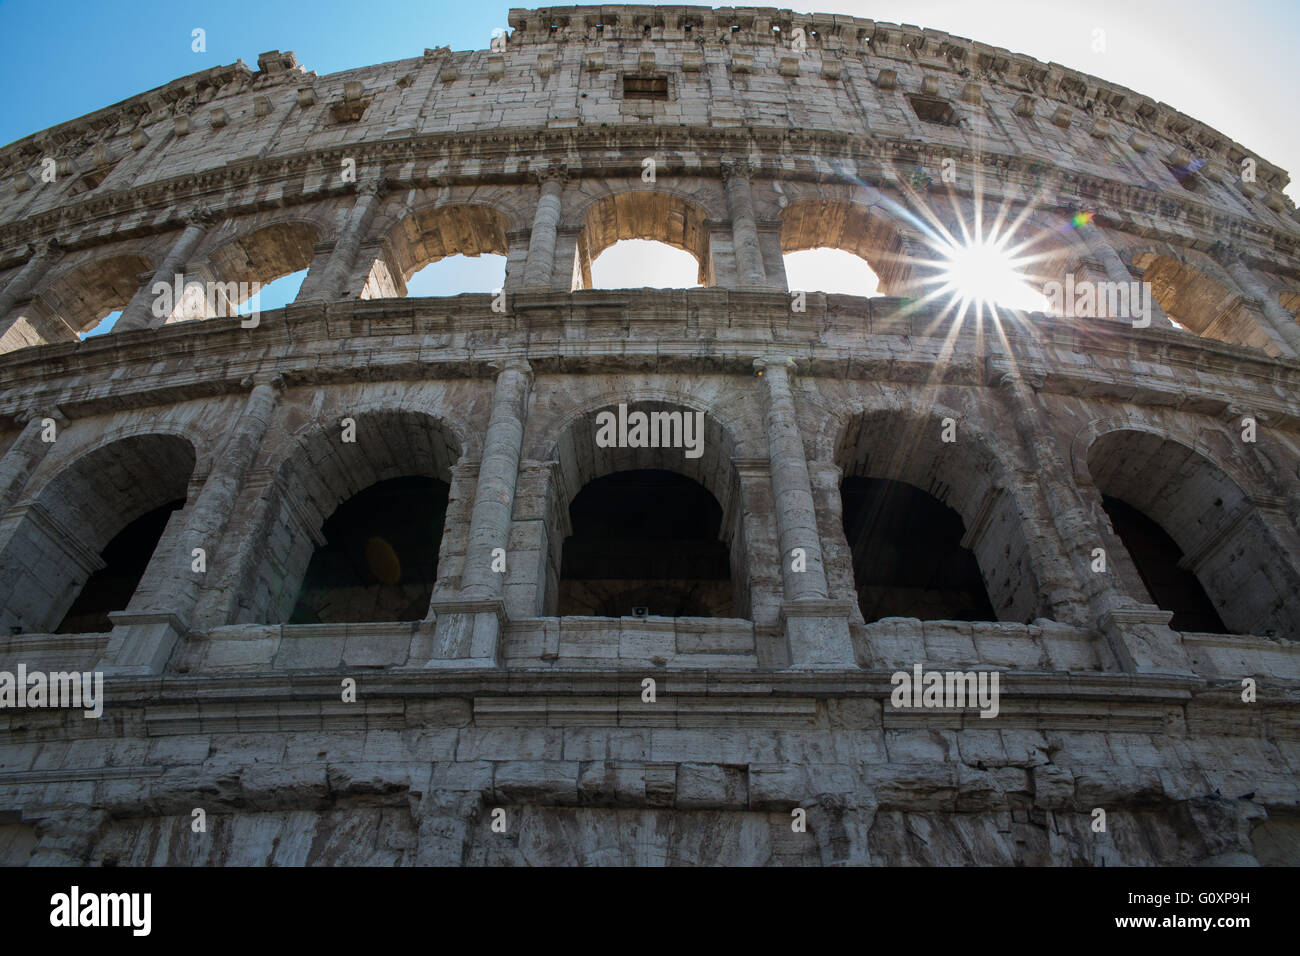 The Colosseum  also known as the Flavian Amphitheatre is an oval amphitheatre in the centre of the city of Rome, - Stock Image